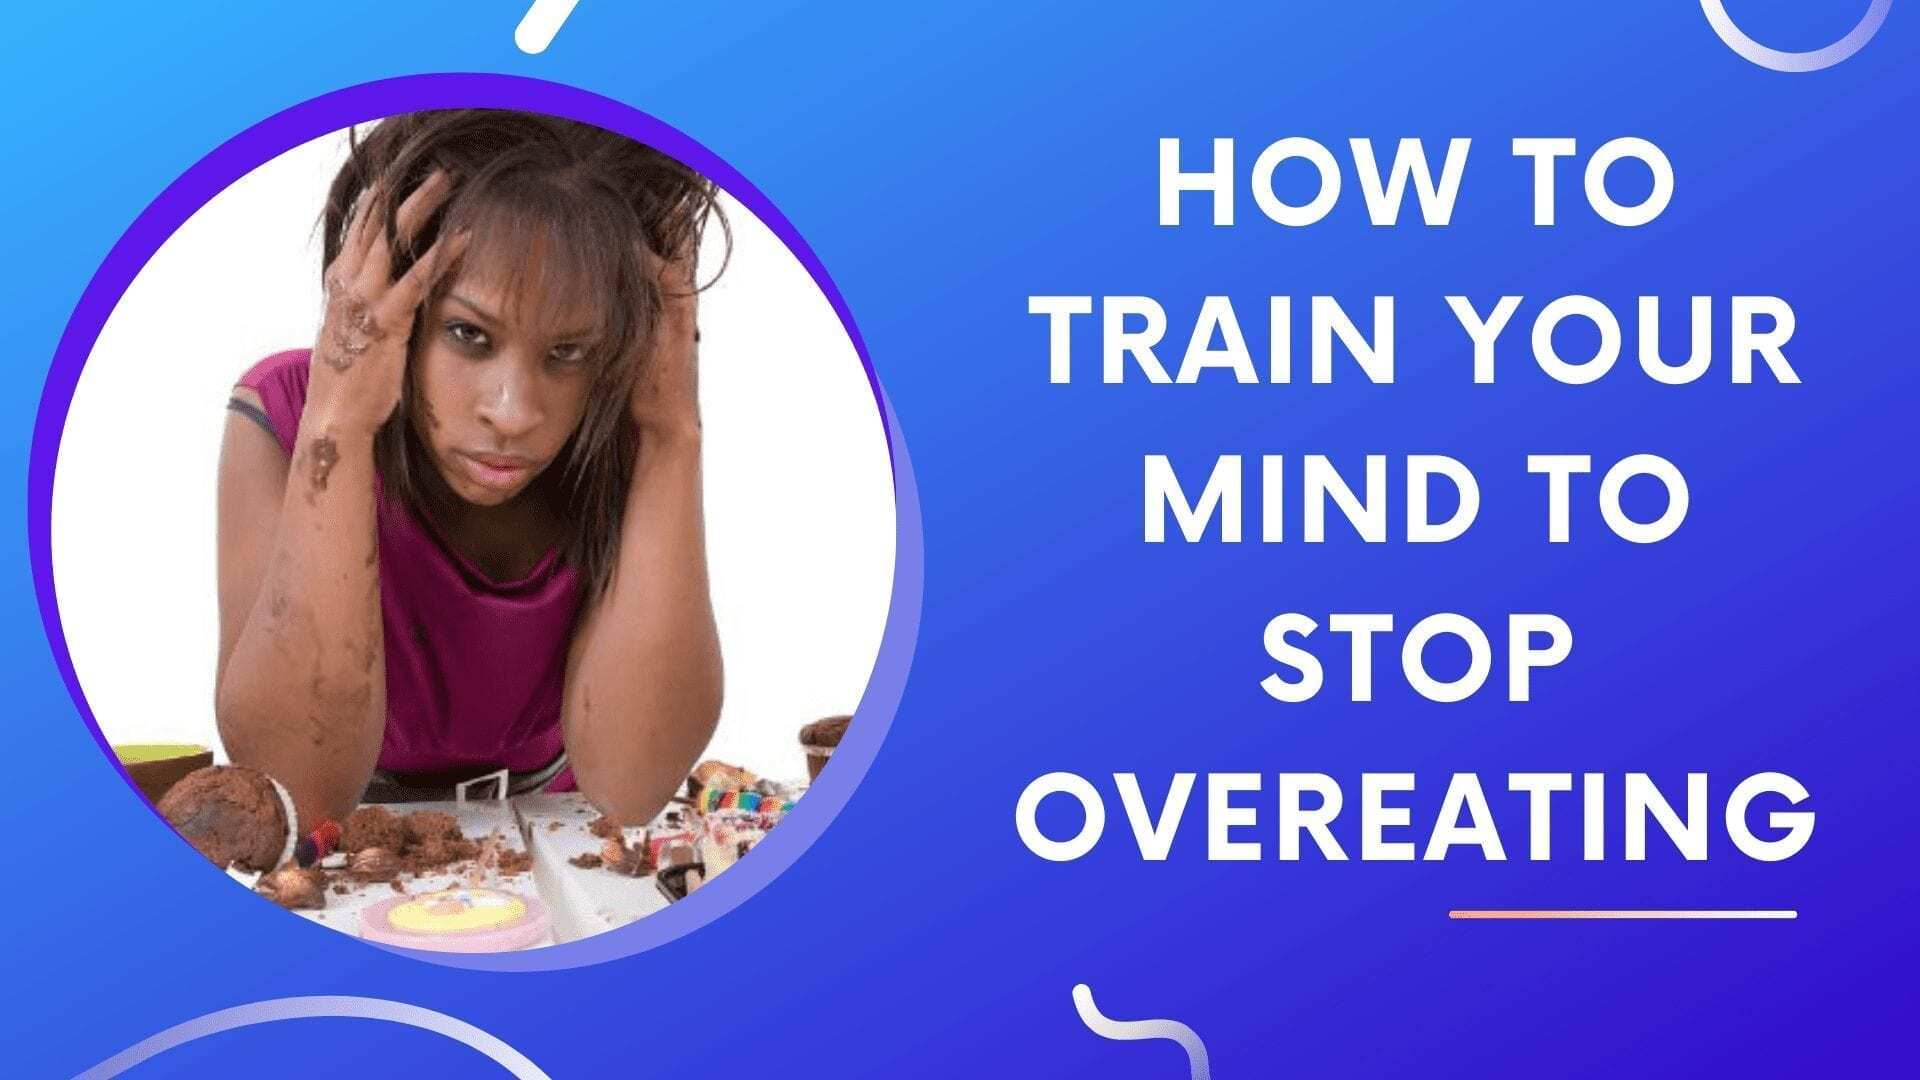 How To Train Your Mind To Stop Overeating